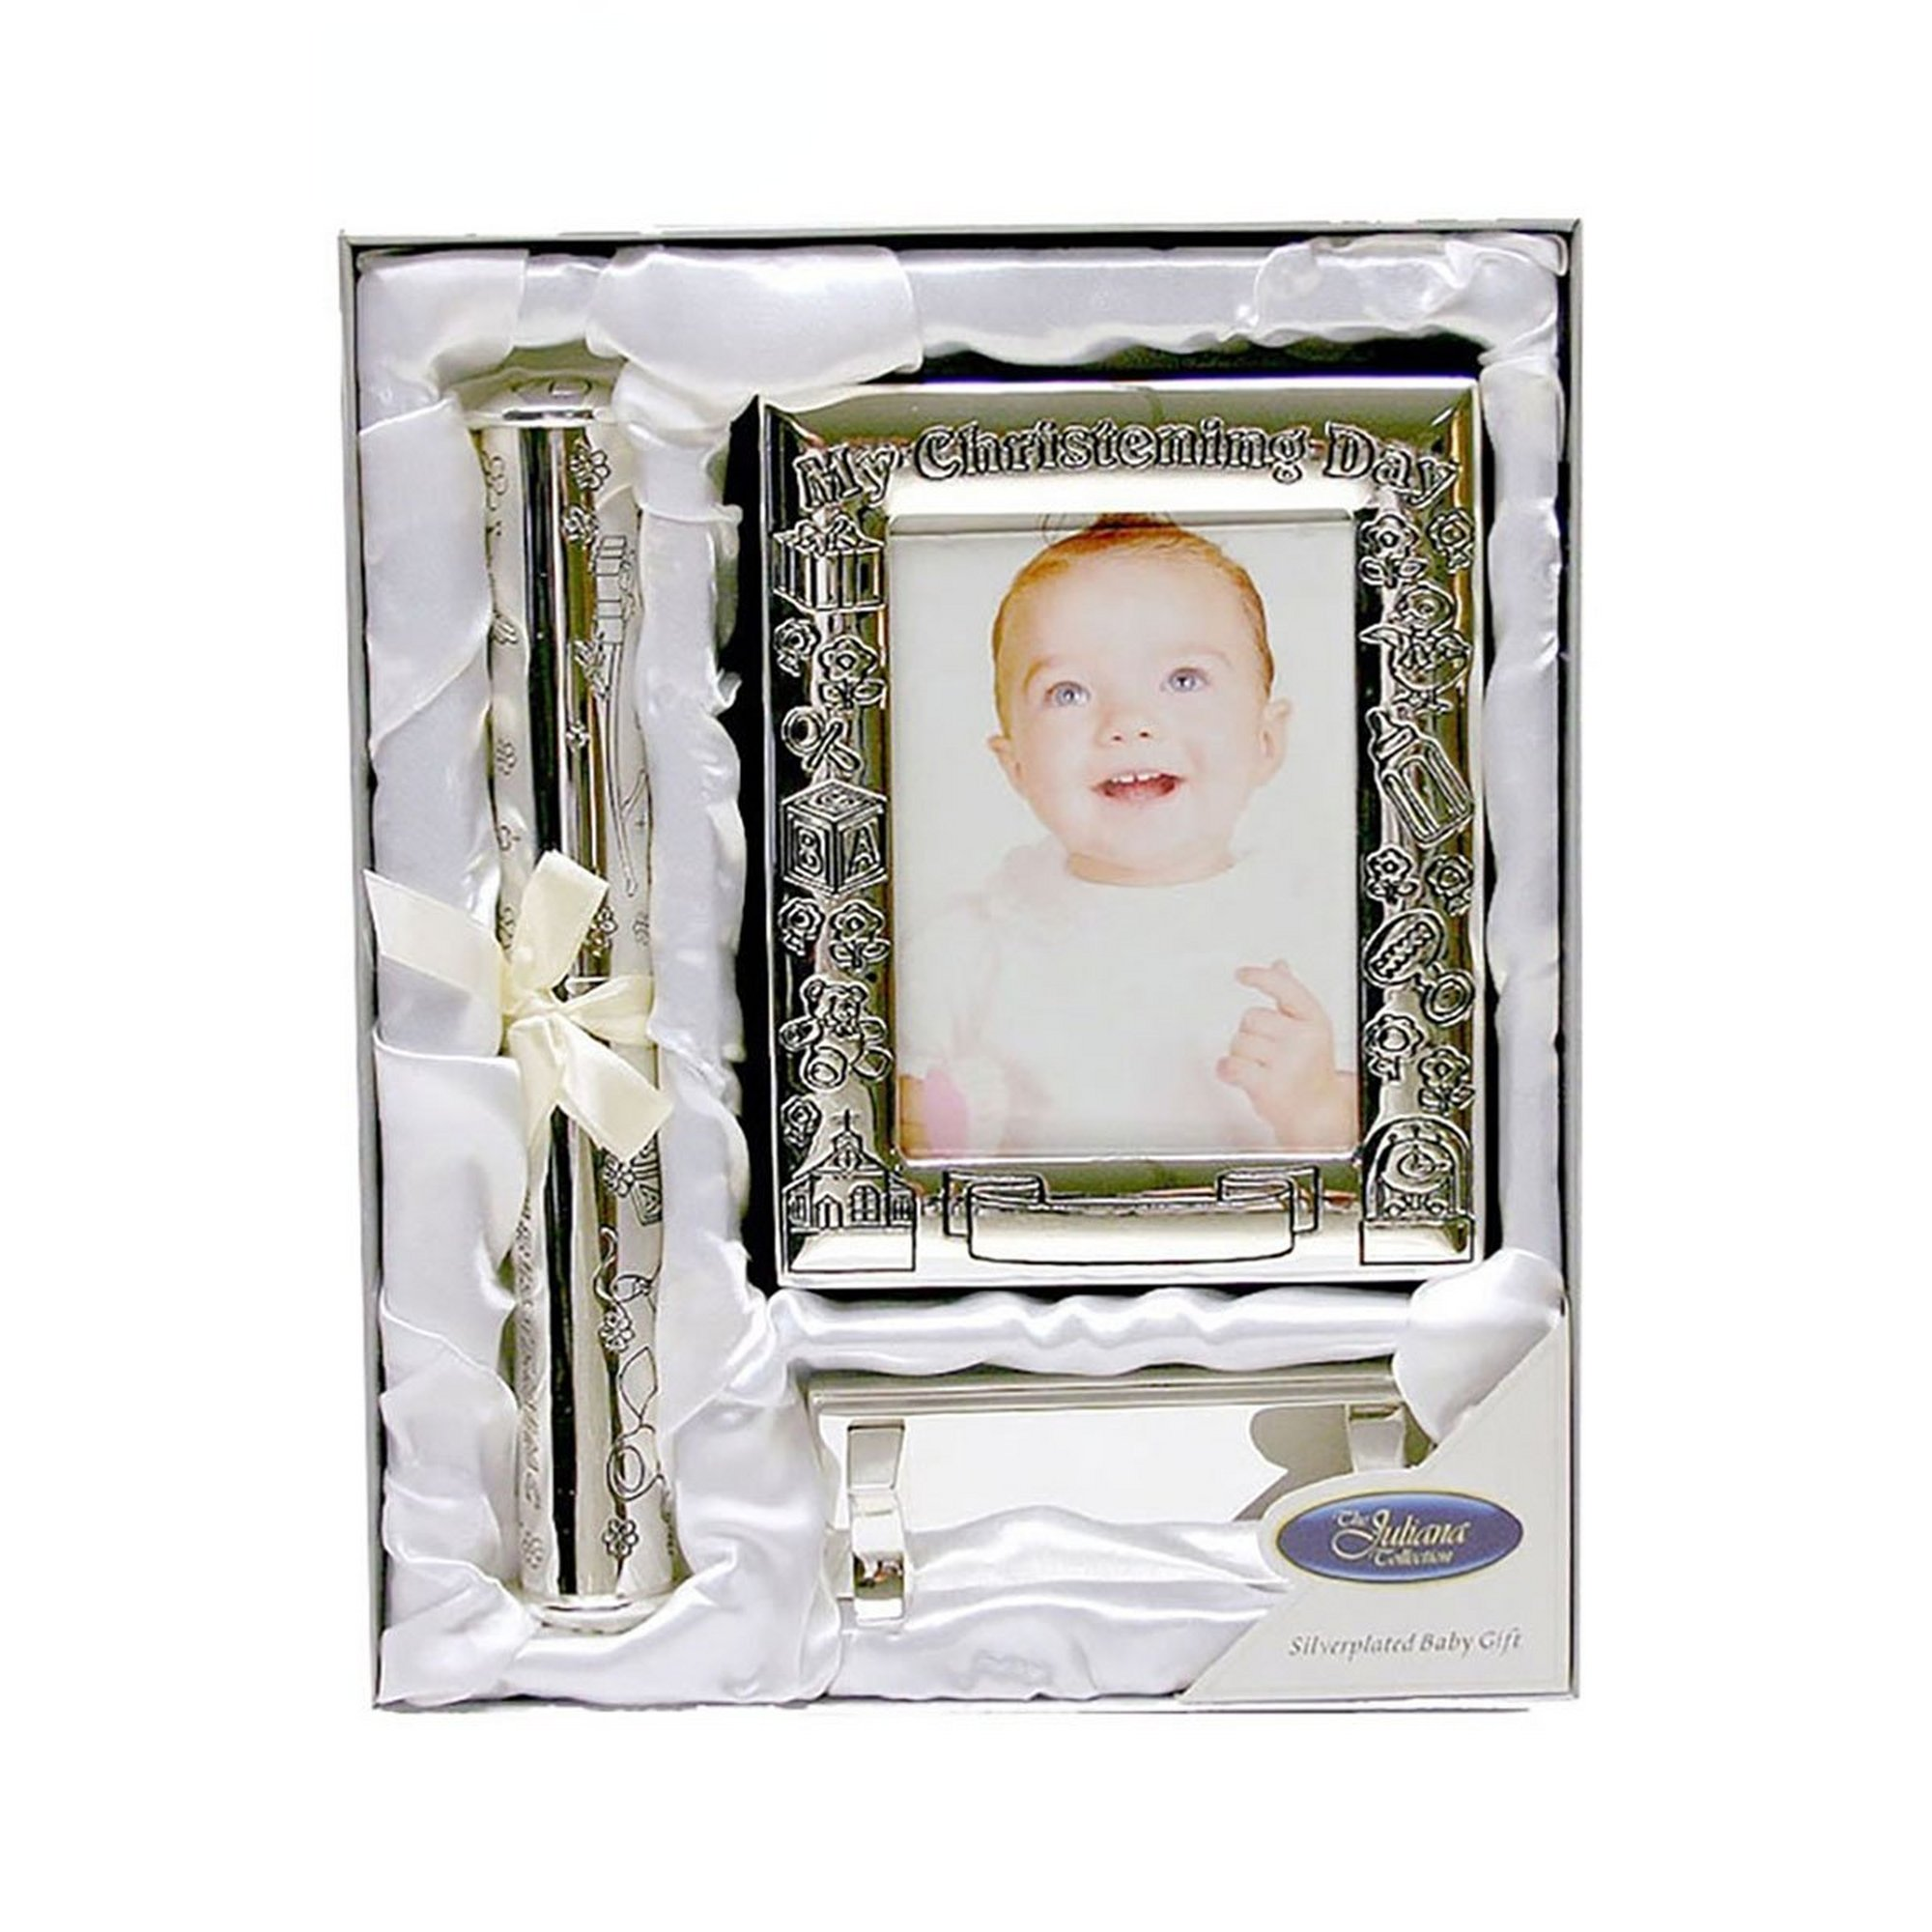 Image of Christening Day - Photo Album and Certificate Stand